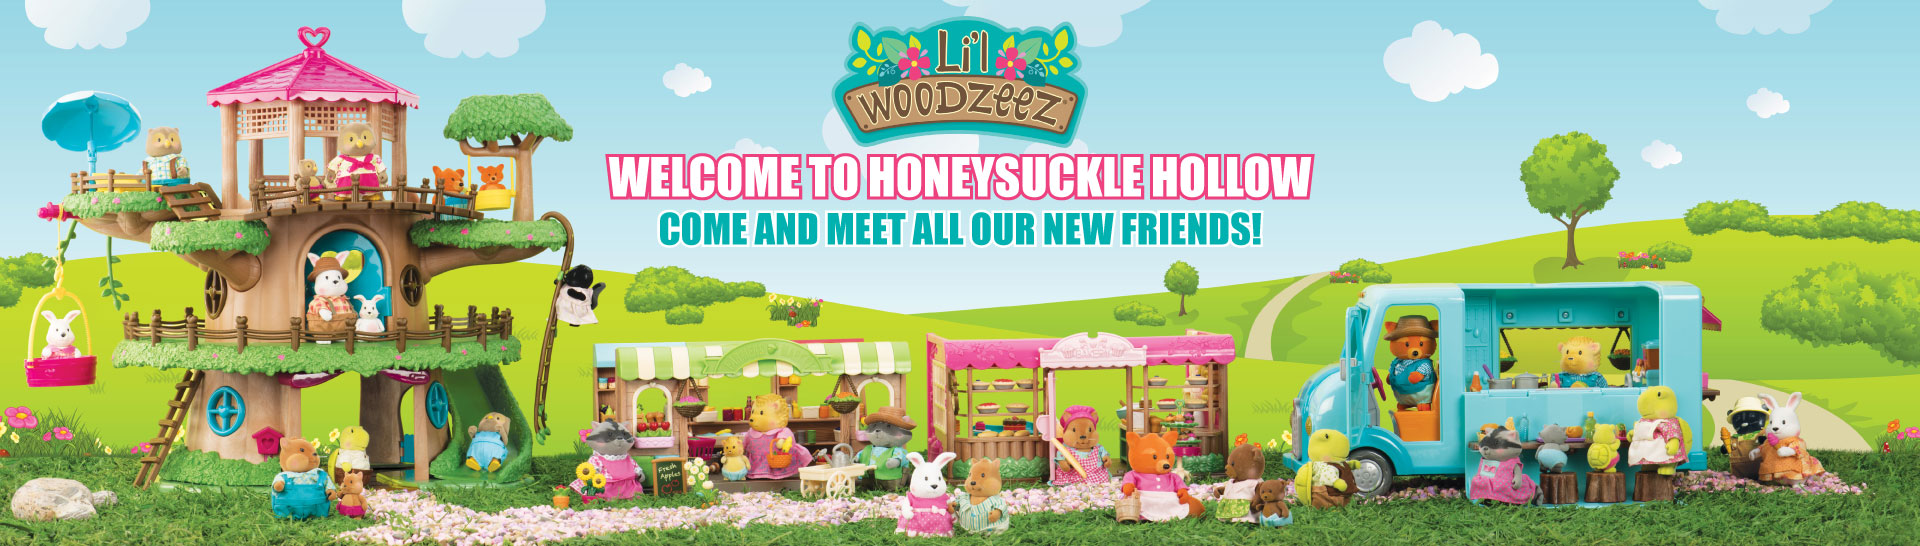 Welcome to Honeysuckle Hollow!